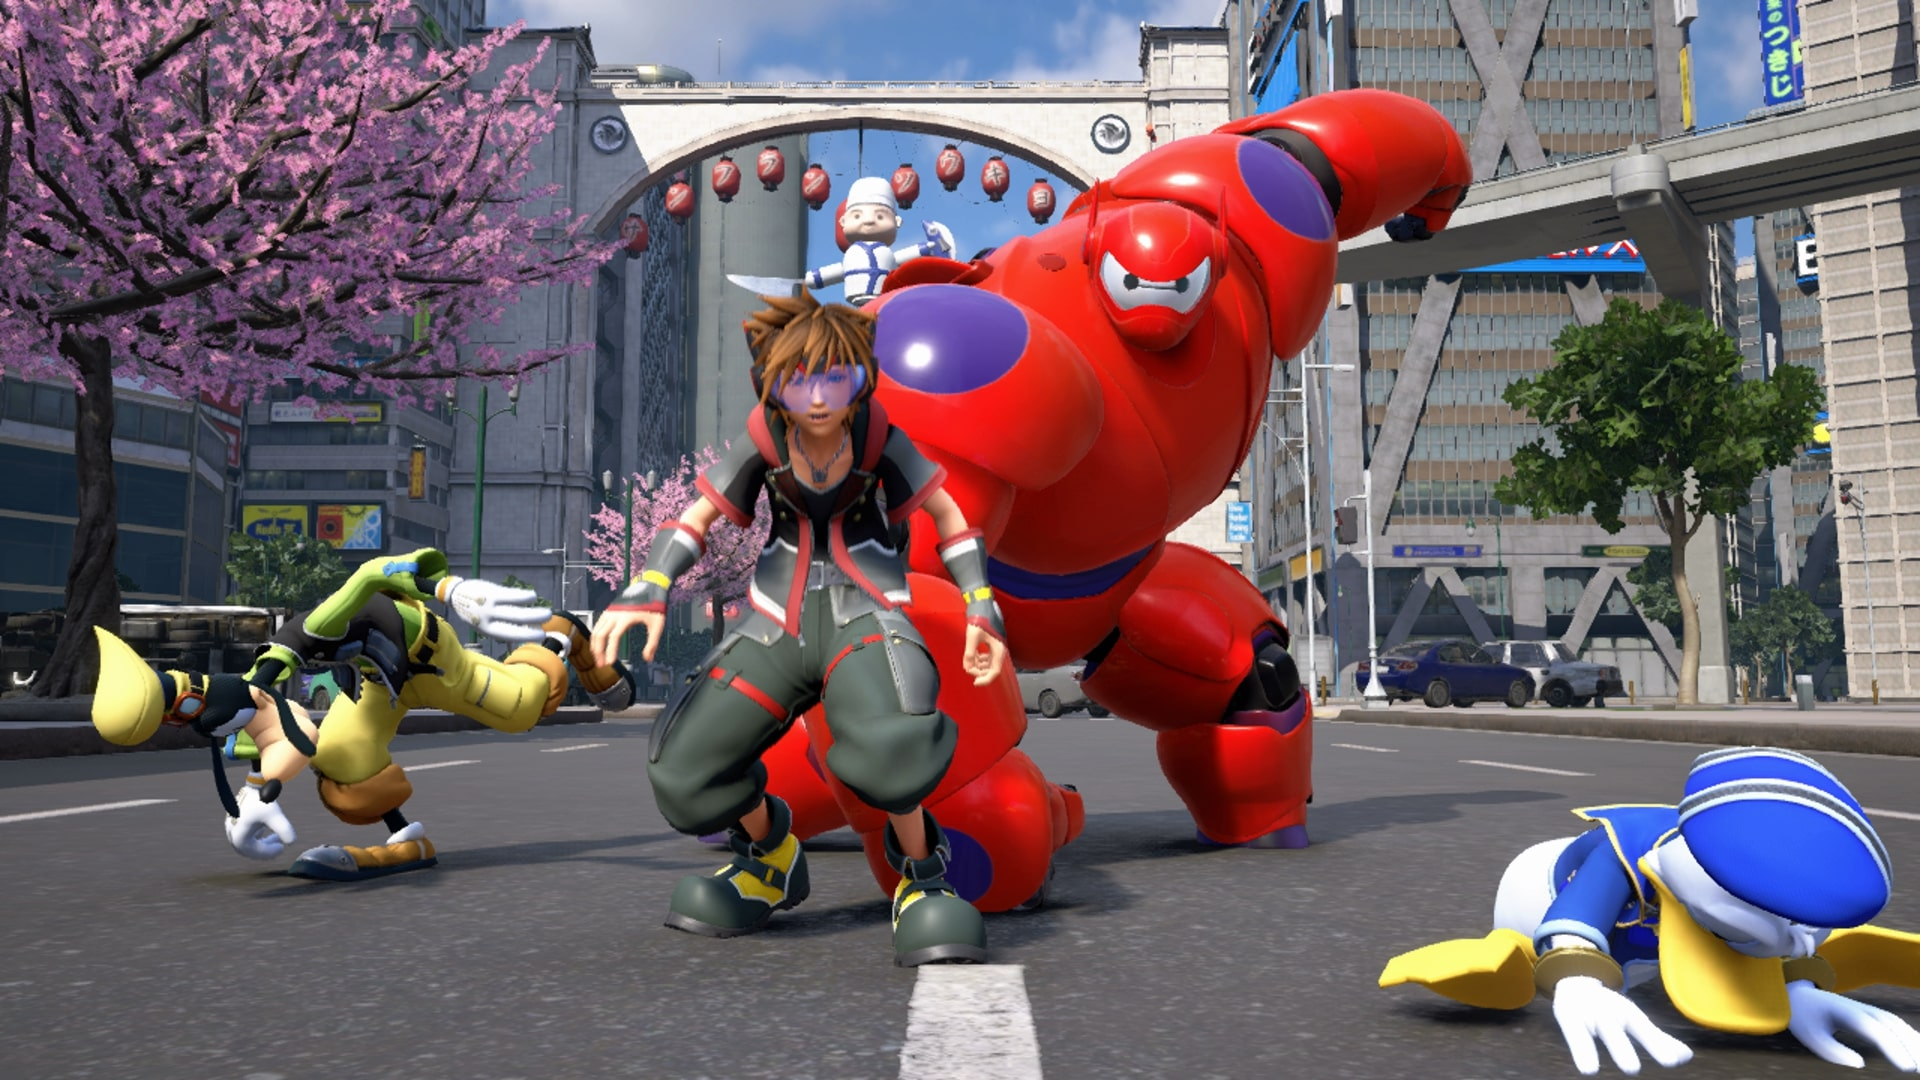 Kingdom Hearts 3 San Fransokyo Treasures And Collectibles Usgamer